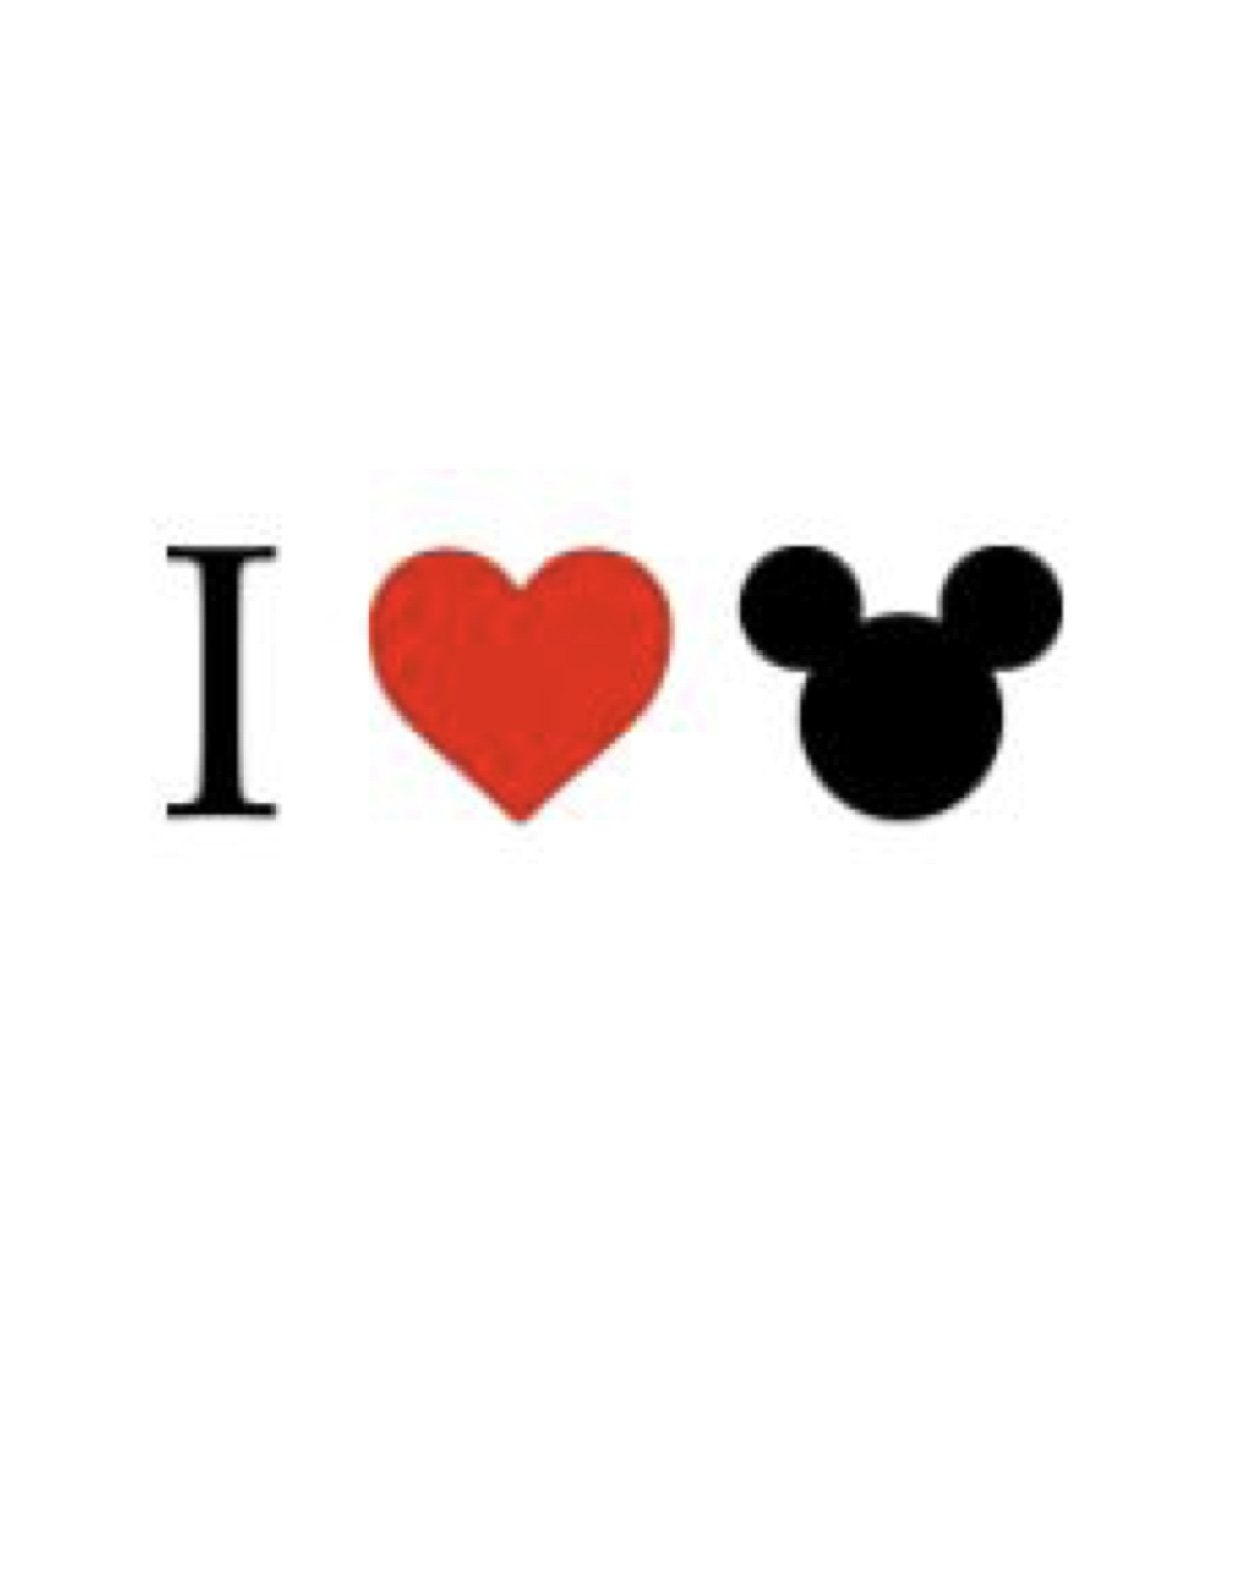 Mickey head love diy vinyl iron on transfer by designinadash on etsy disney shirts for family